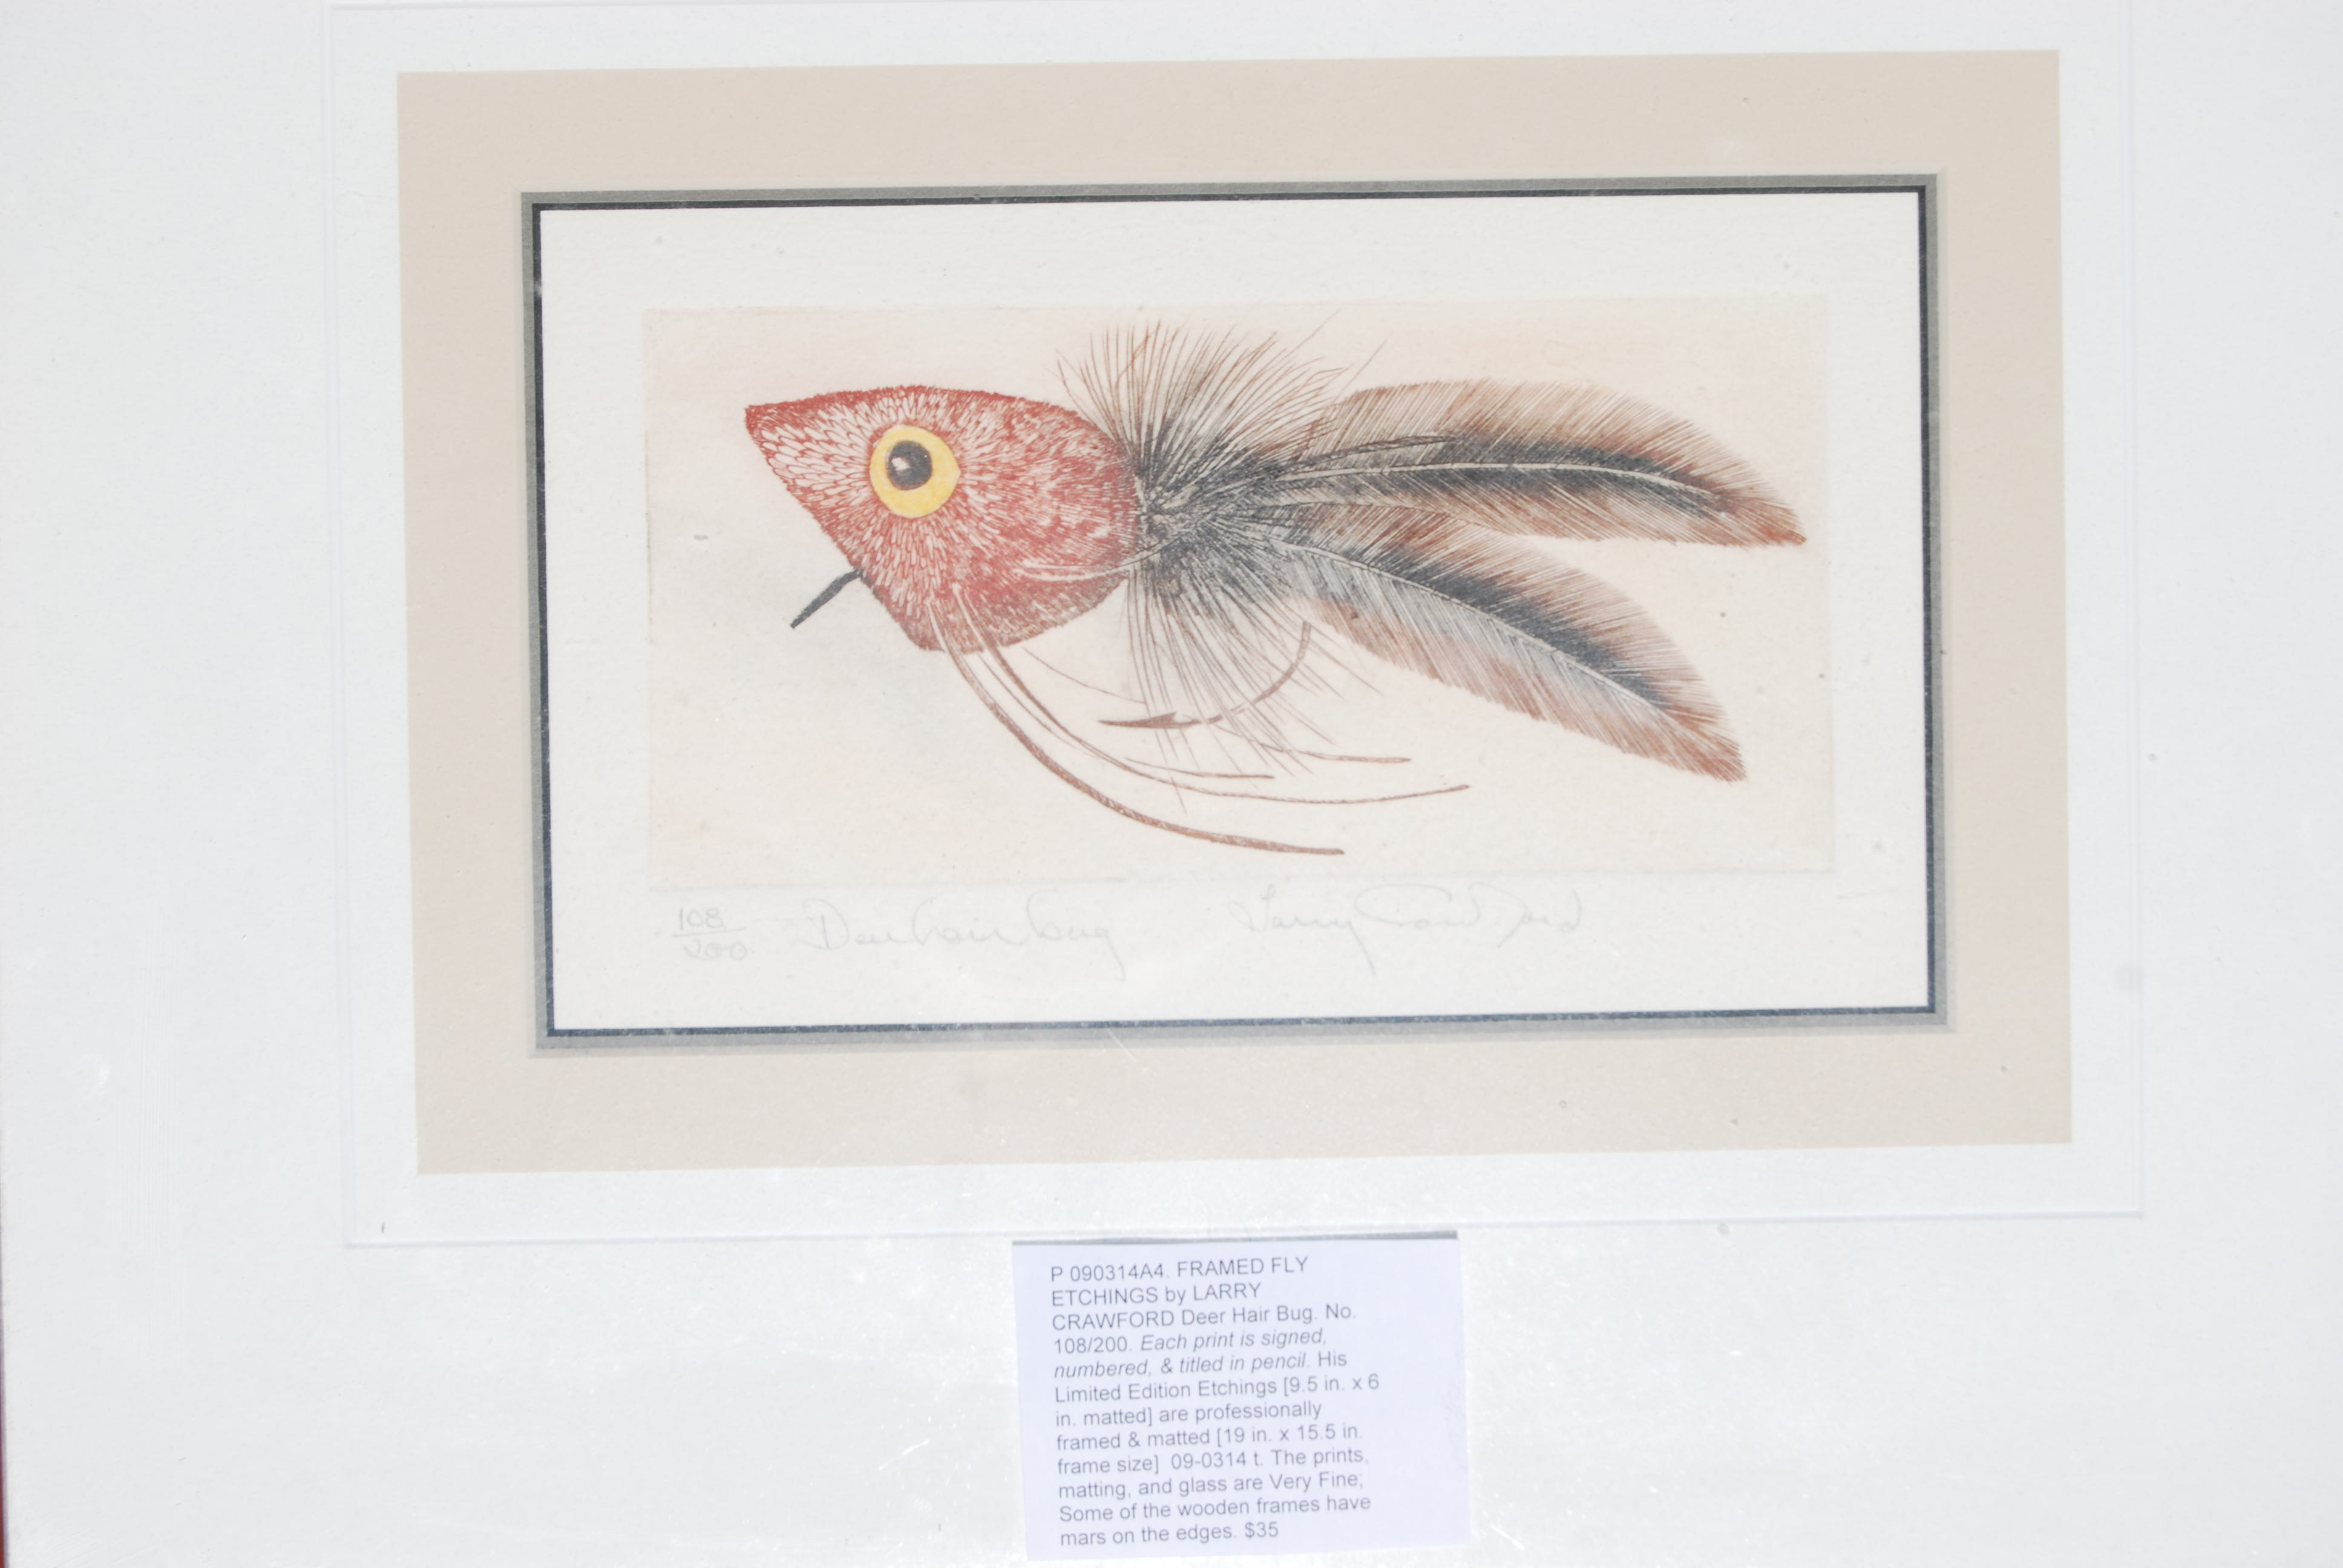 Image for FRAMED FLY ETCHINGS by LARRY CRAWFORD Deer Hair Bug.